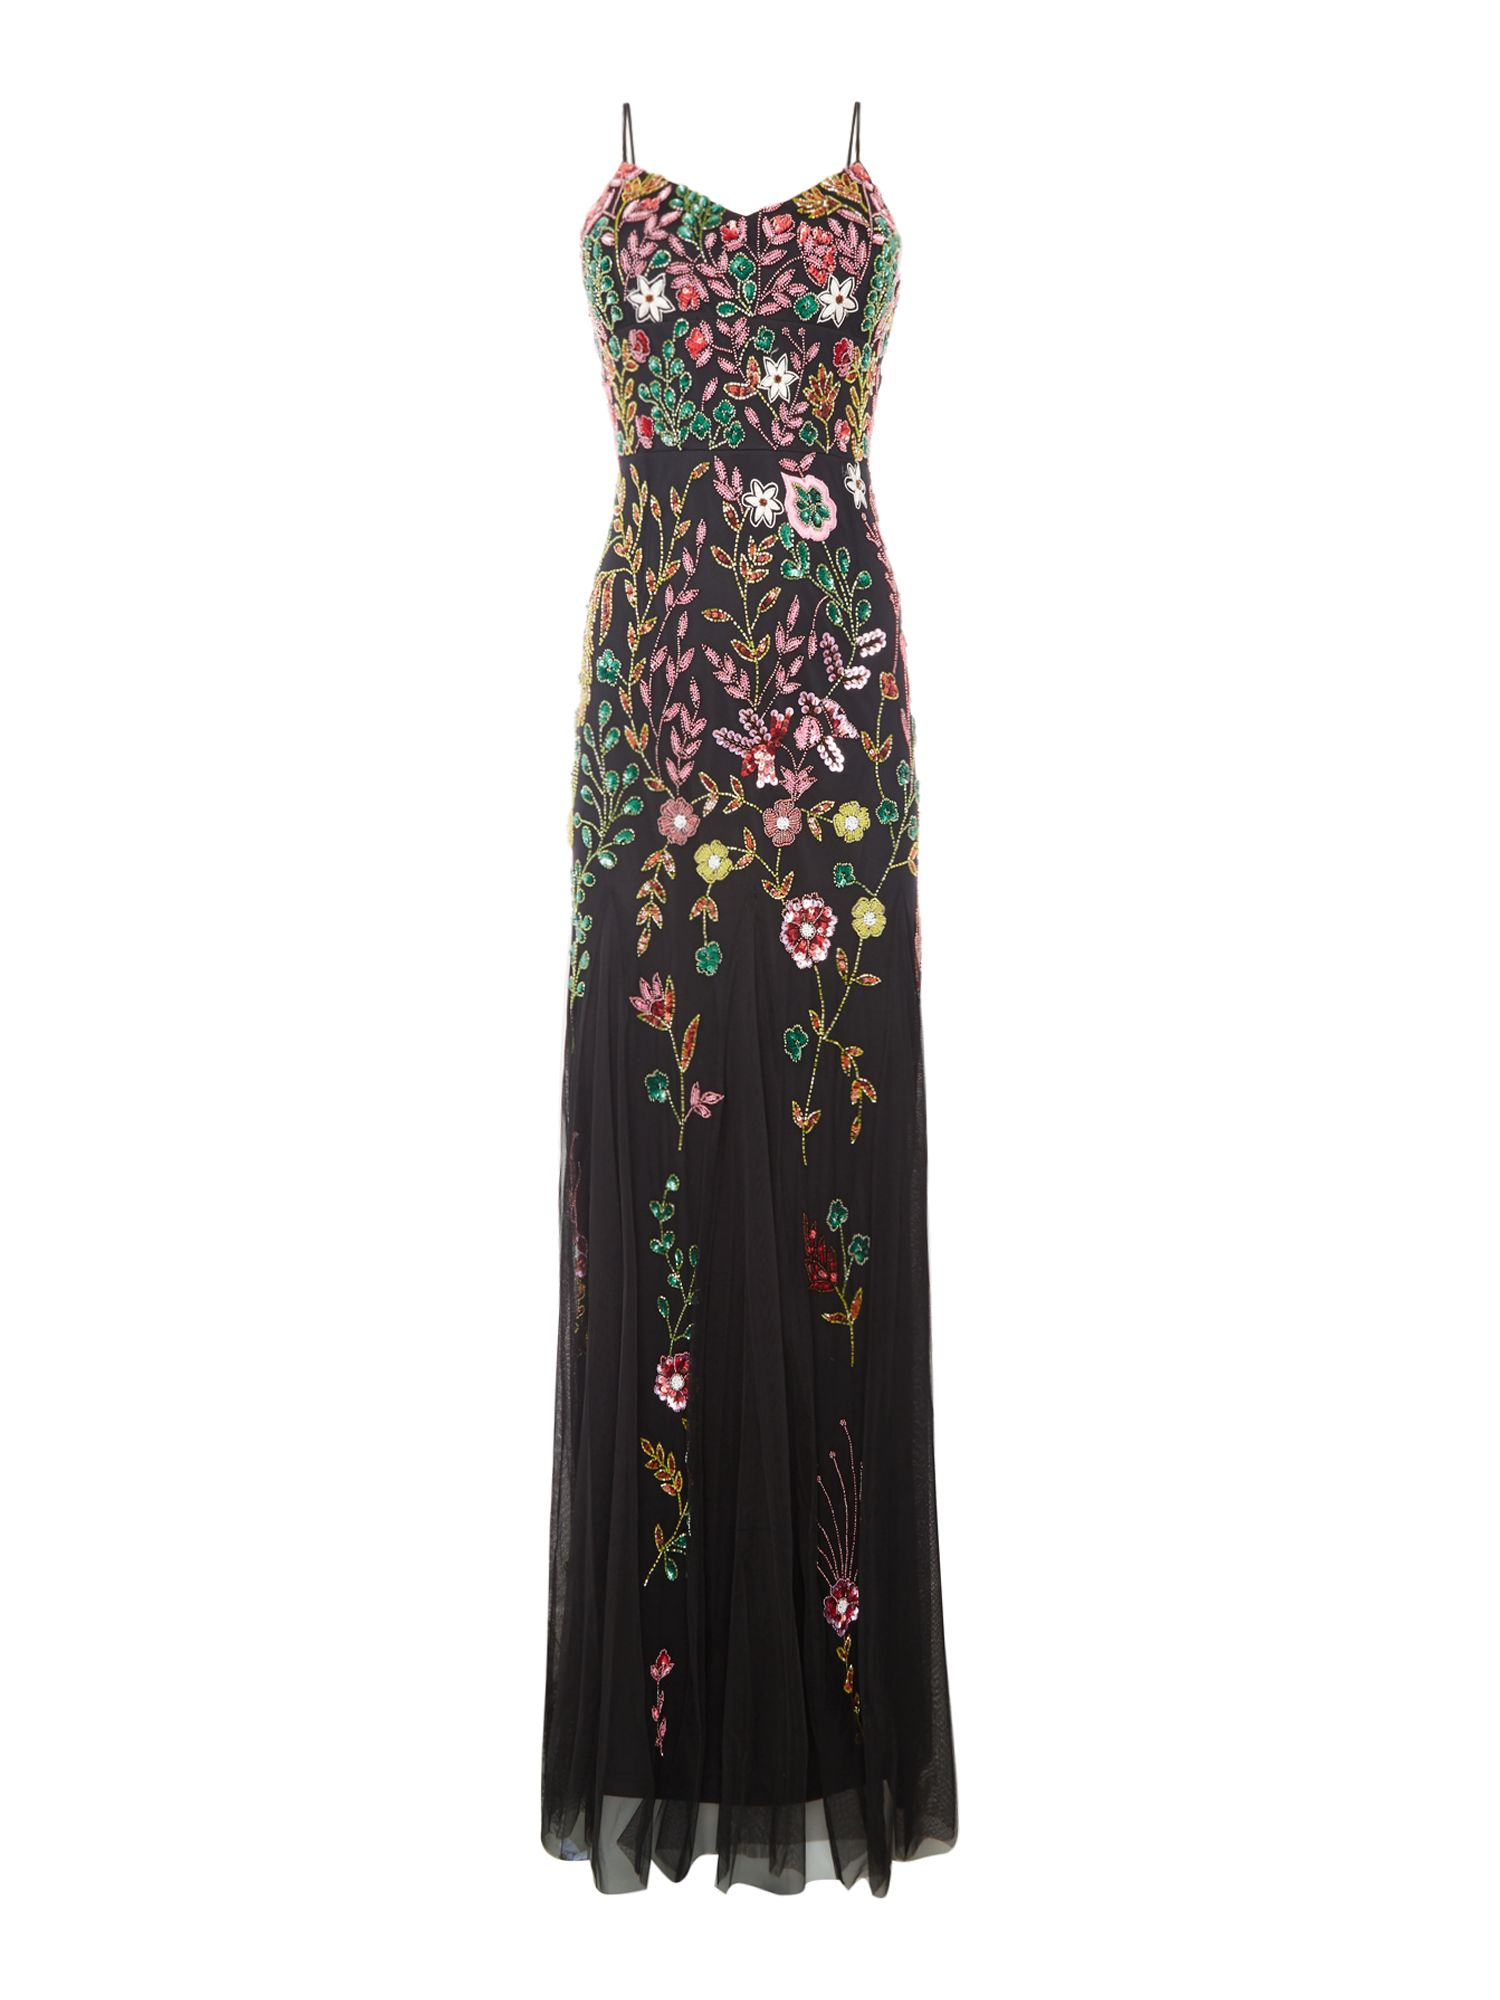 Adrianna Papell V neck floral beaded dress, Black Multi